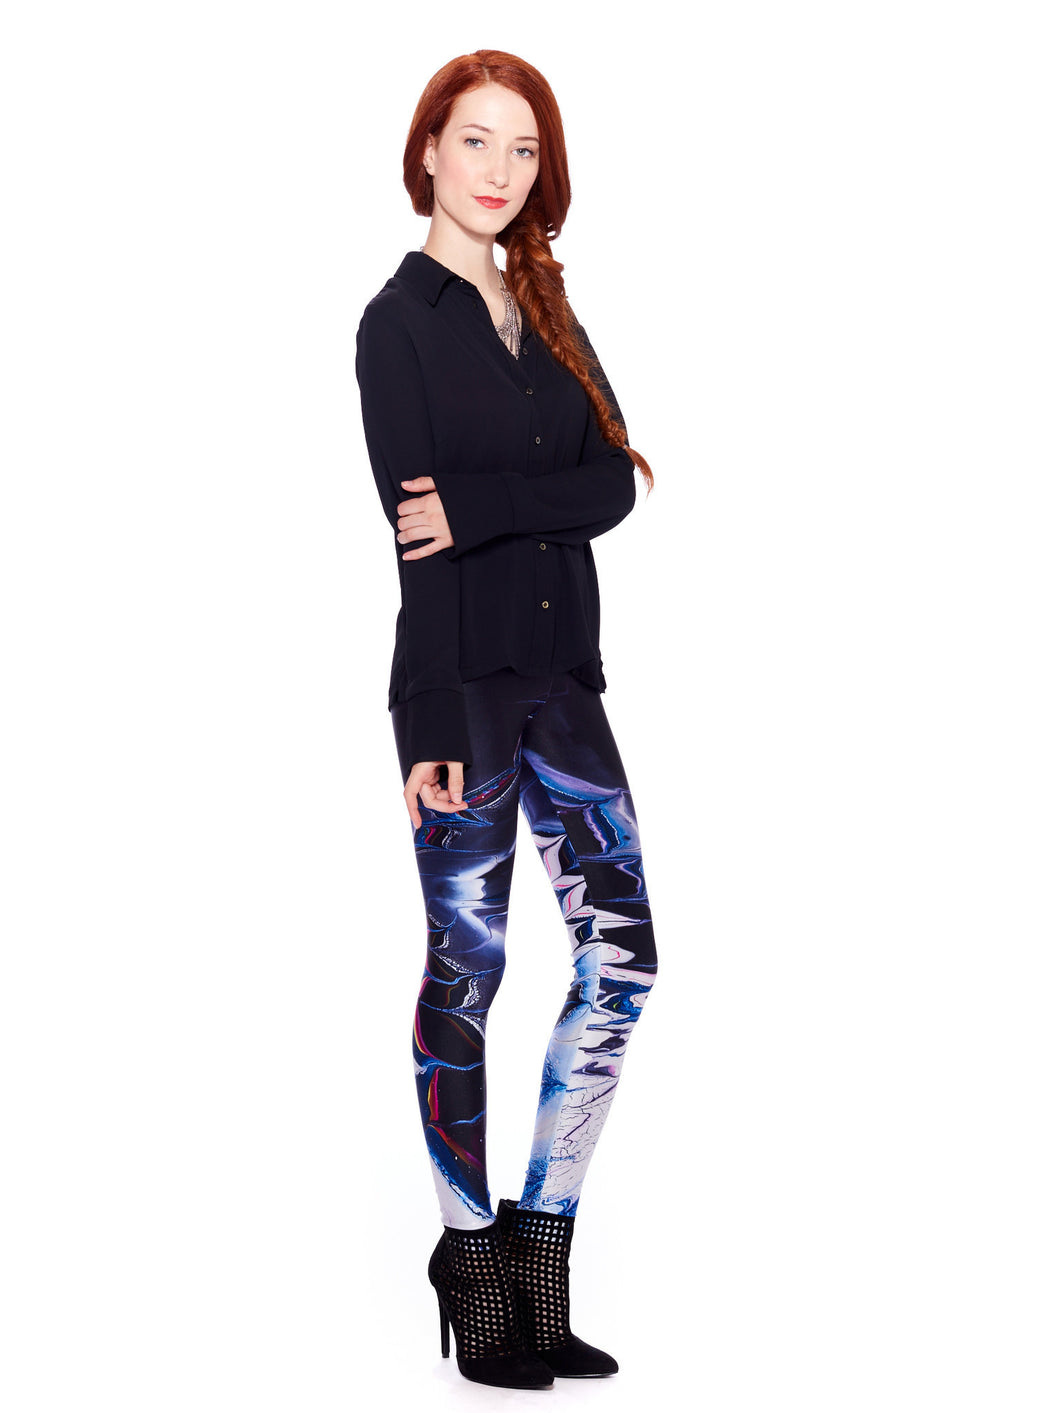 Dark Matter Leggings